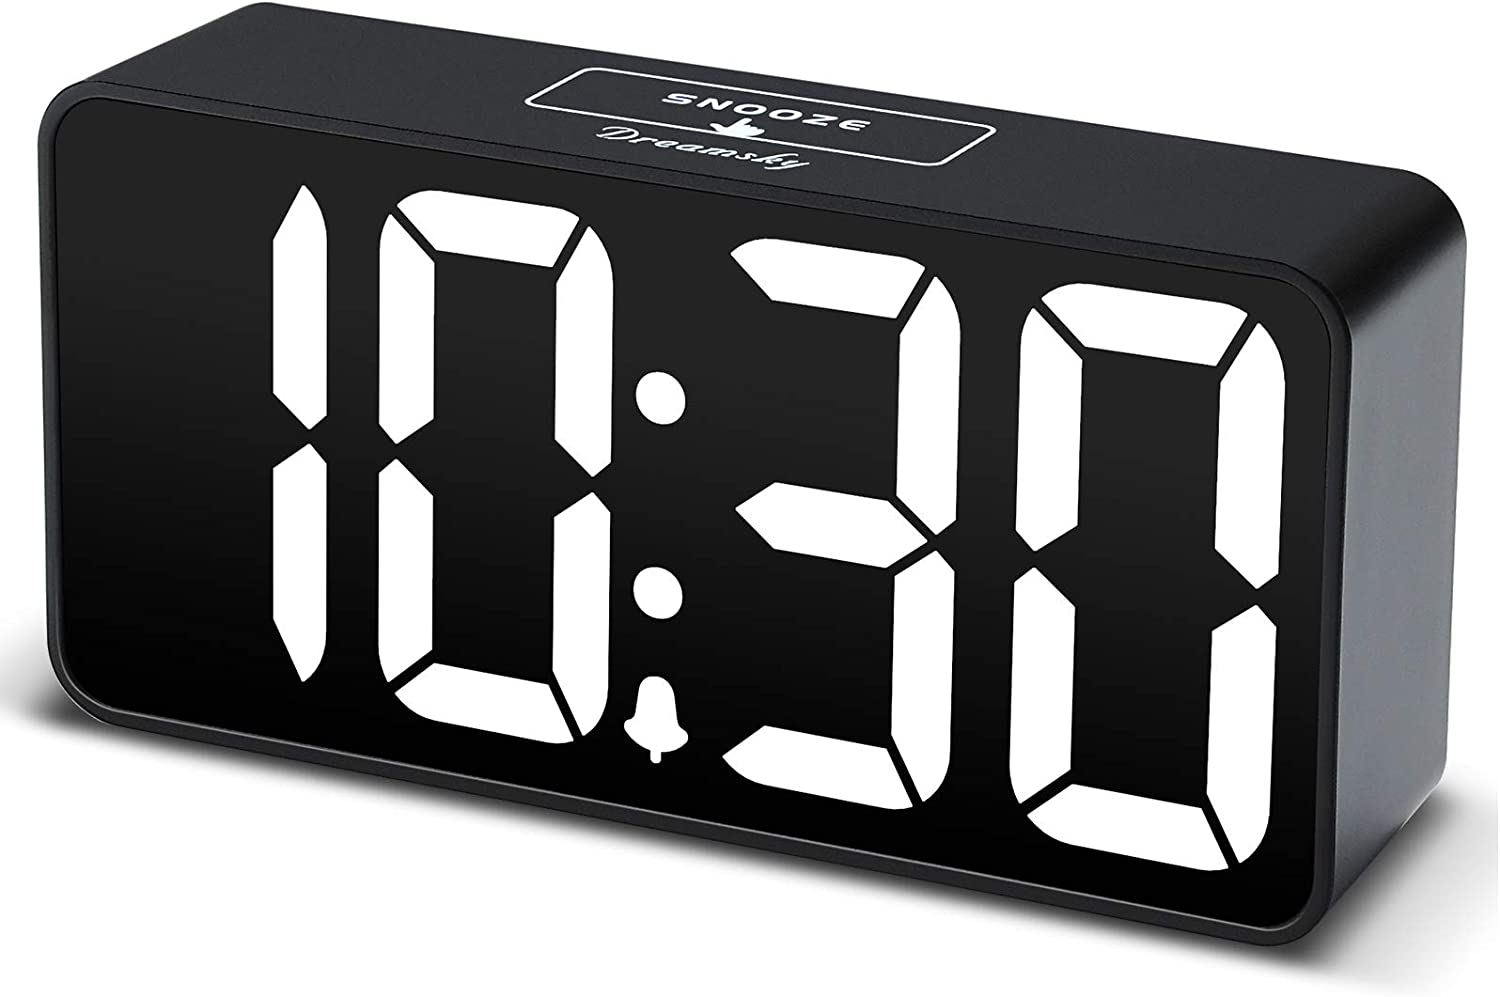 DreamSky Compact Digital Alarm Clock for Manufacturer OFFicial shop Charging New mail order USB with Port